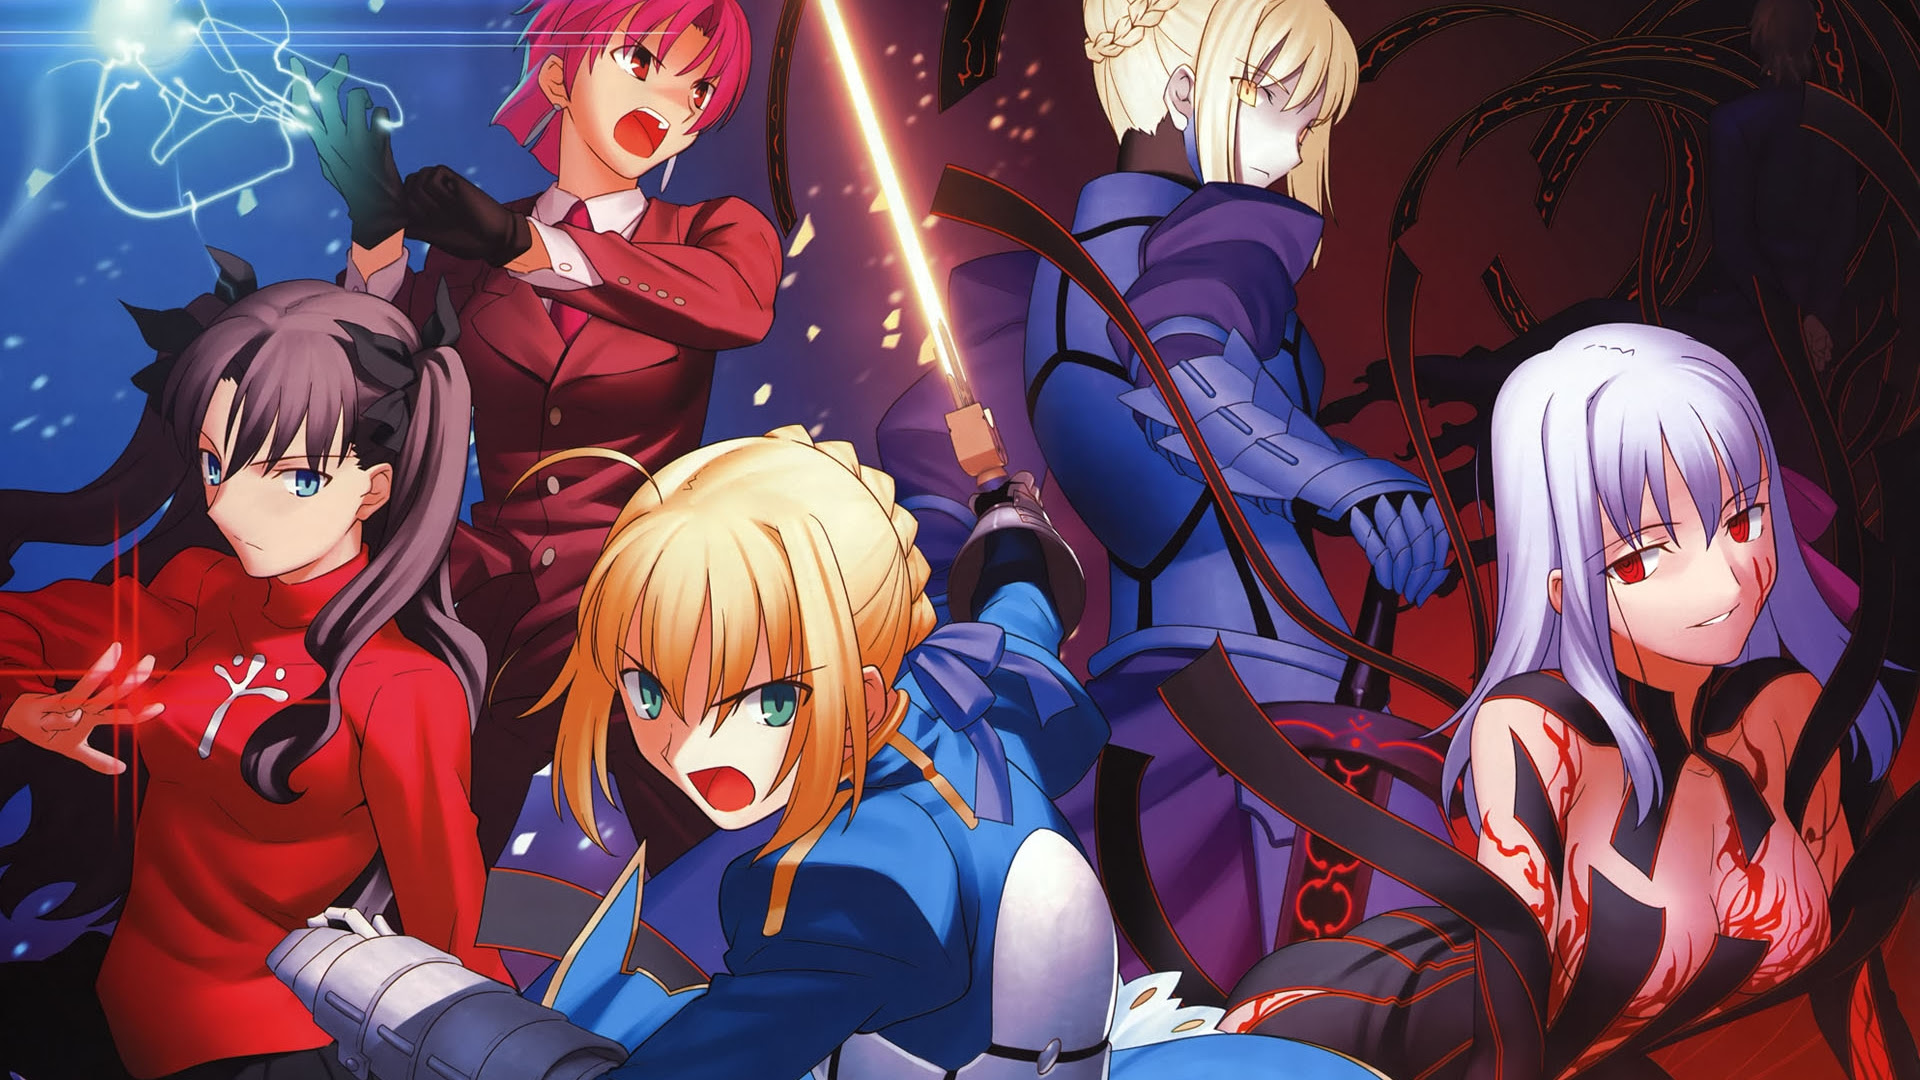 Blondes Fatestay Night Tie Weapons Armor Saber Swords 1920x1080